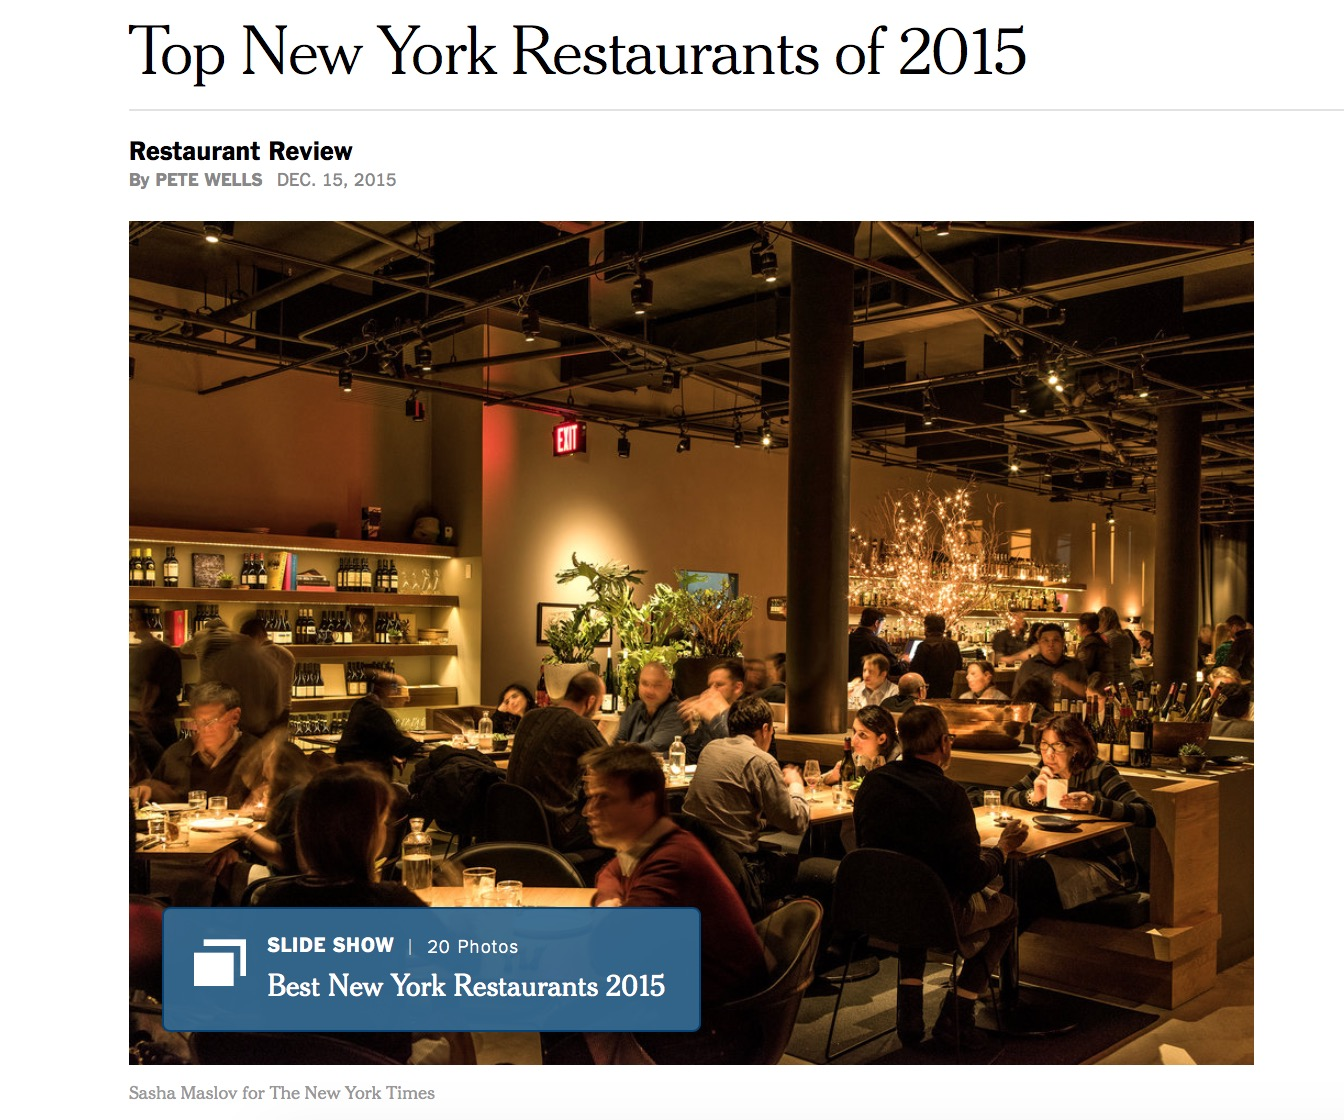 wells of the new york times reveals his 2015 top new york restaurants